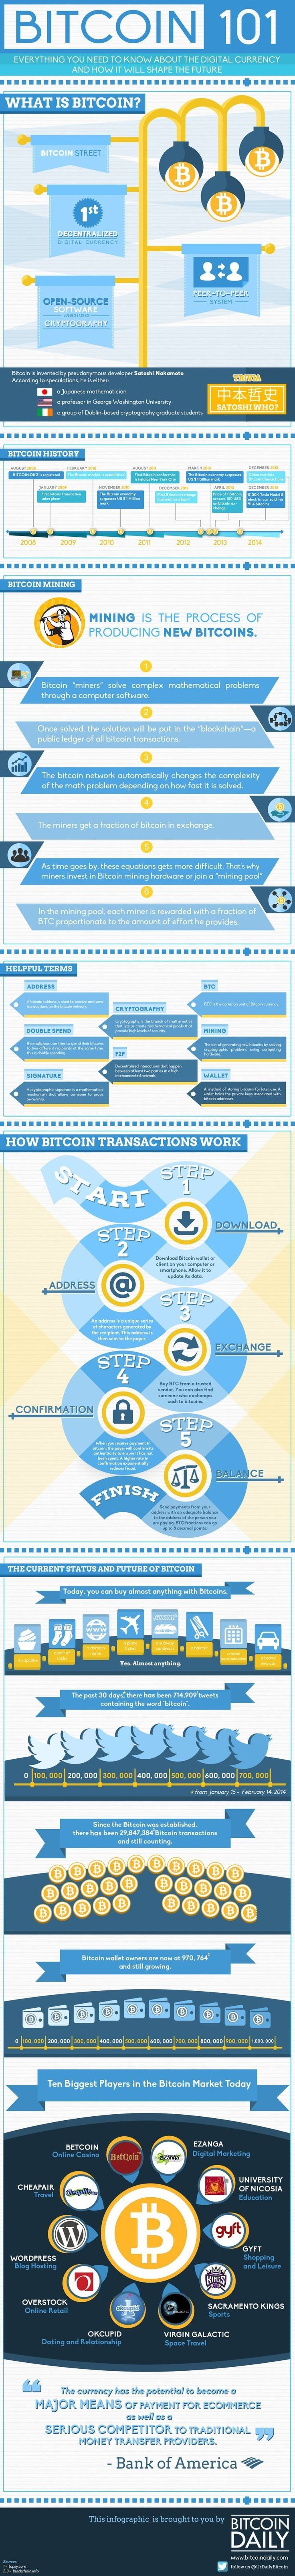 Bitcoin 101. All you need to know about Bitcoin. How and where to trade Bitcoin ? Find the easiest way to buy and sell Bitcoin. Start trading bitcoins today! #bitcoin #affiliate #crytocurrency #trading